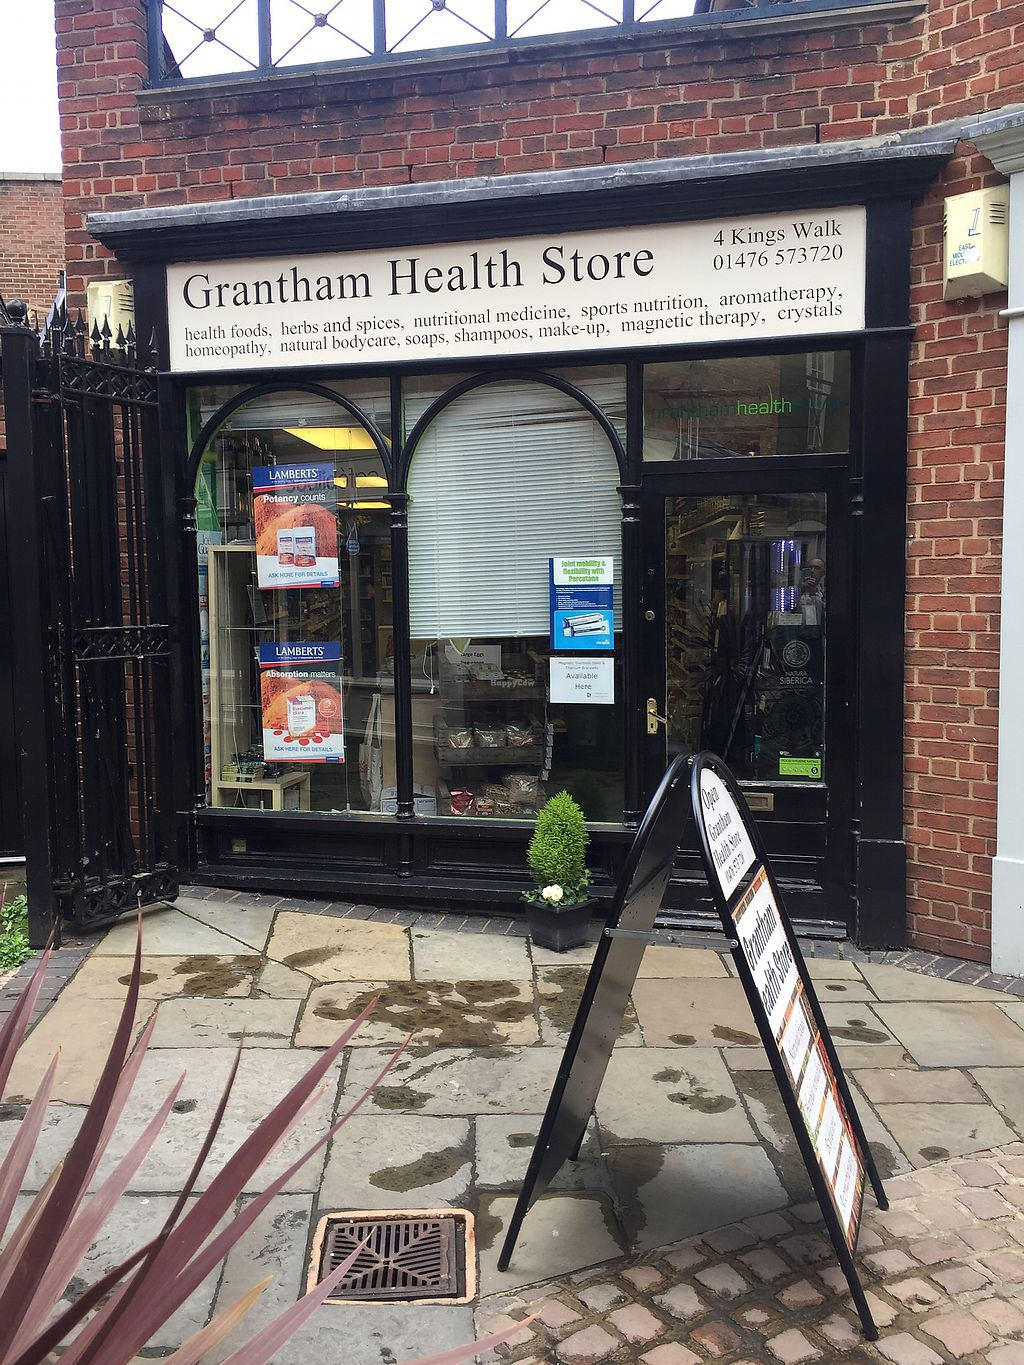 "Photo of Grantham Health Store  by <a href=""/members/profile/Happyhealthyeater"">Happyhealthyeater</a> <br/>Street view #2 <br/> April 25, 2018  - <a href='/contact/abuse/image/28873/390919'>Report</a>"